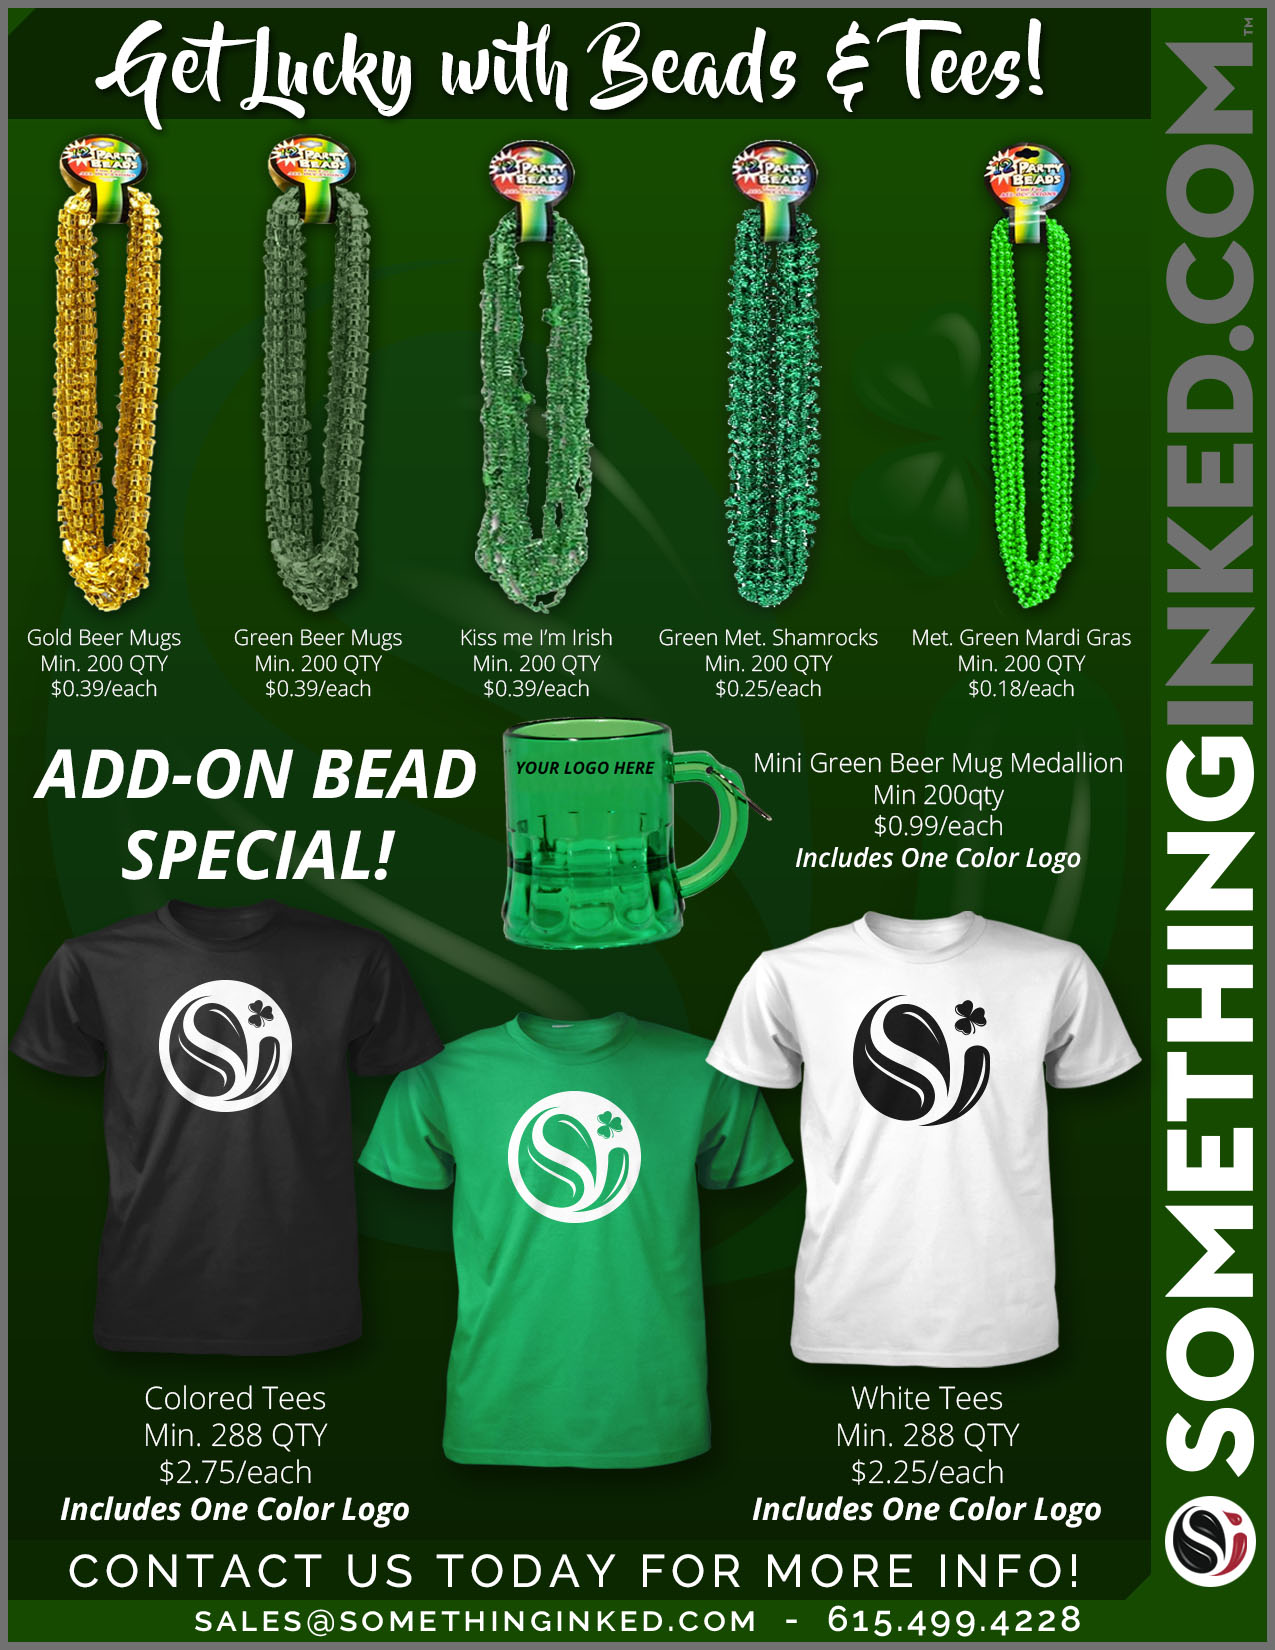 St. Patrick's Day Beads and Tees